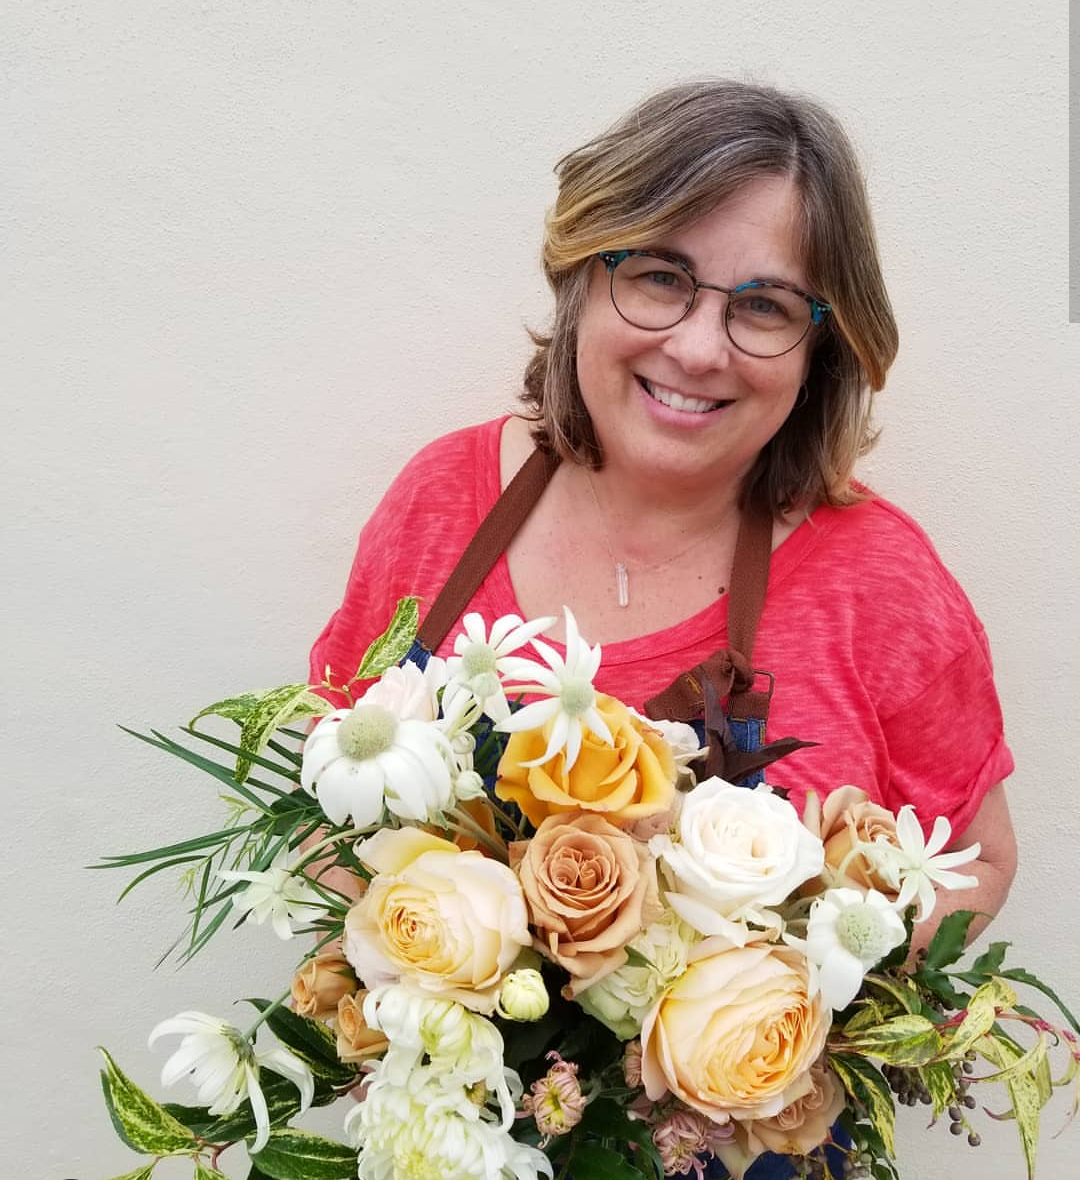 Founder/CEO - Diane loves anything that keeps her smiling. This includes small puppies, big local blooms, and a good conversation. Her days at Bowerbird are filled with client interactions, vendor relations, and tracking down the best of the best in product. Diane's Secret talent is being up with the floral trends and knowing just where to find a specific flower. Her favorite flowers are off-beat tulips, bearded iris, and not your average roses.As the Founder of Bowerbird, Diane started the business with the idea that arrangements should be created to showcase what each individual bloom can do. This concept is a contrast to typical traditional floral designers. In order to learn the trade Diane trained with Sarah Ryhanen of Saipua based in Brooklyn, NY in 2014. From there she has continued her lessons since by taking classes with well known designers such as Pondarosa & Thyme, Love'n fresh Flowers, and Bows & Arrows Flowers.